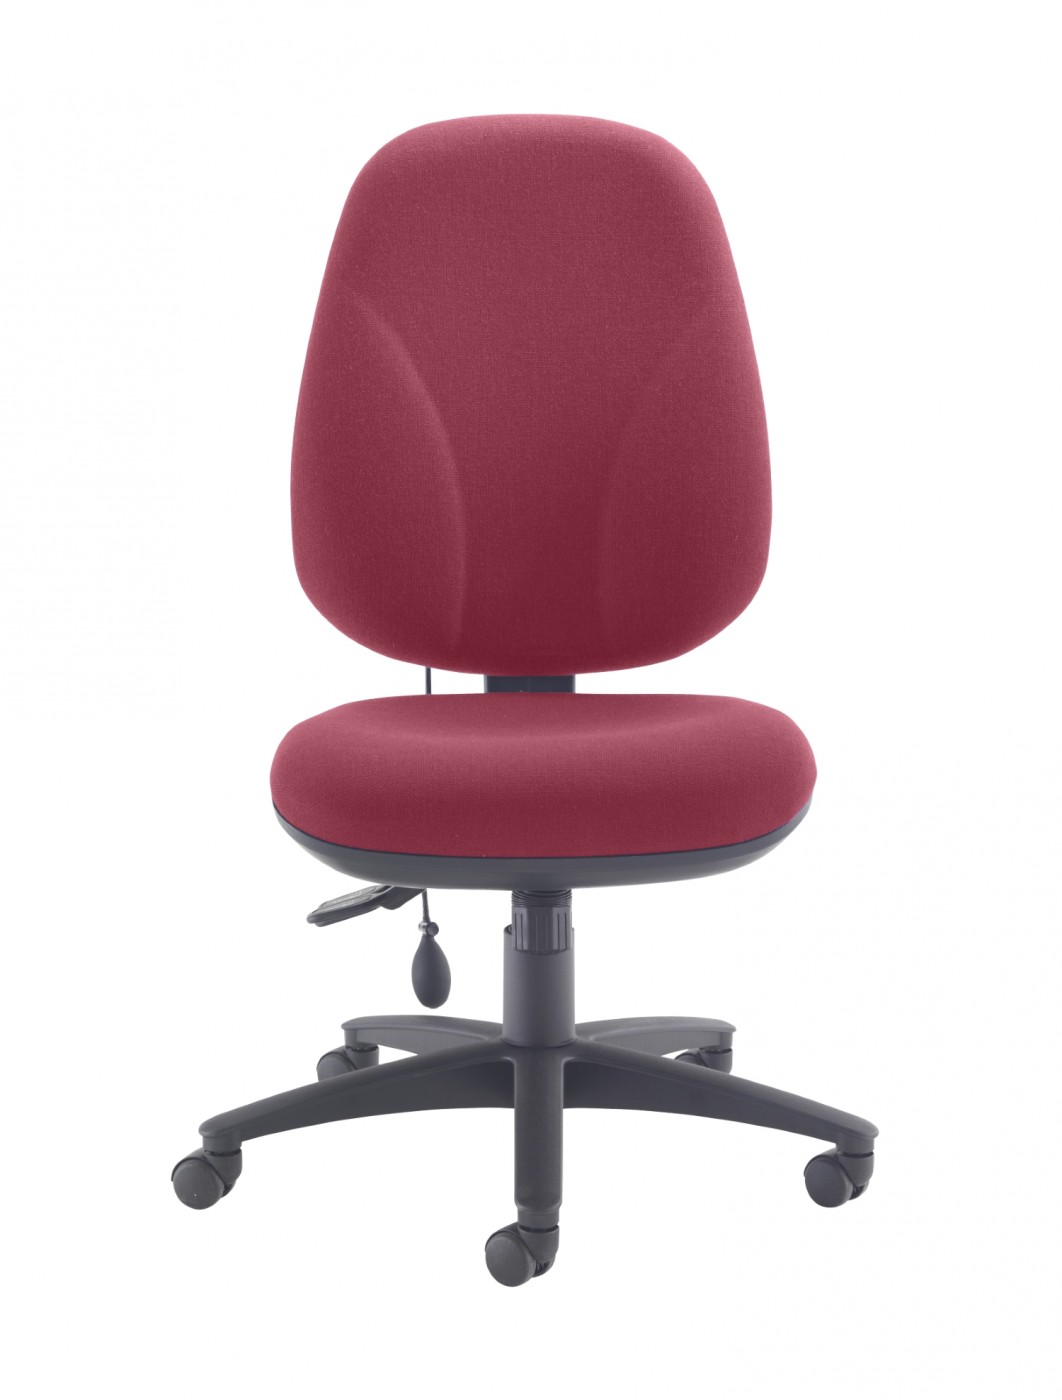 TC Office Concept Maxi Ergo Office Chair CH0808CL In Claret   Enlarged View